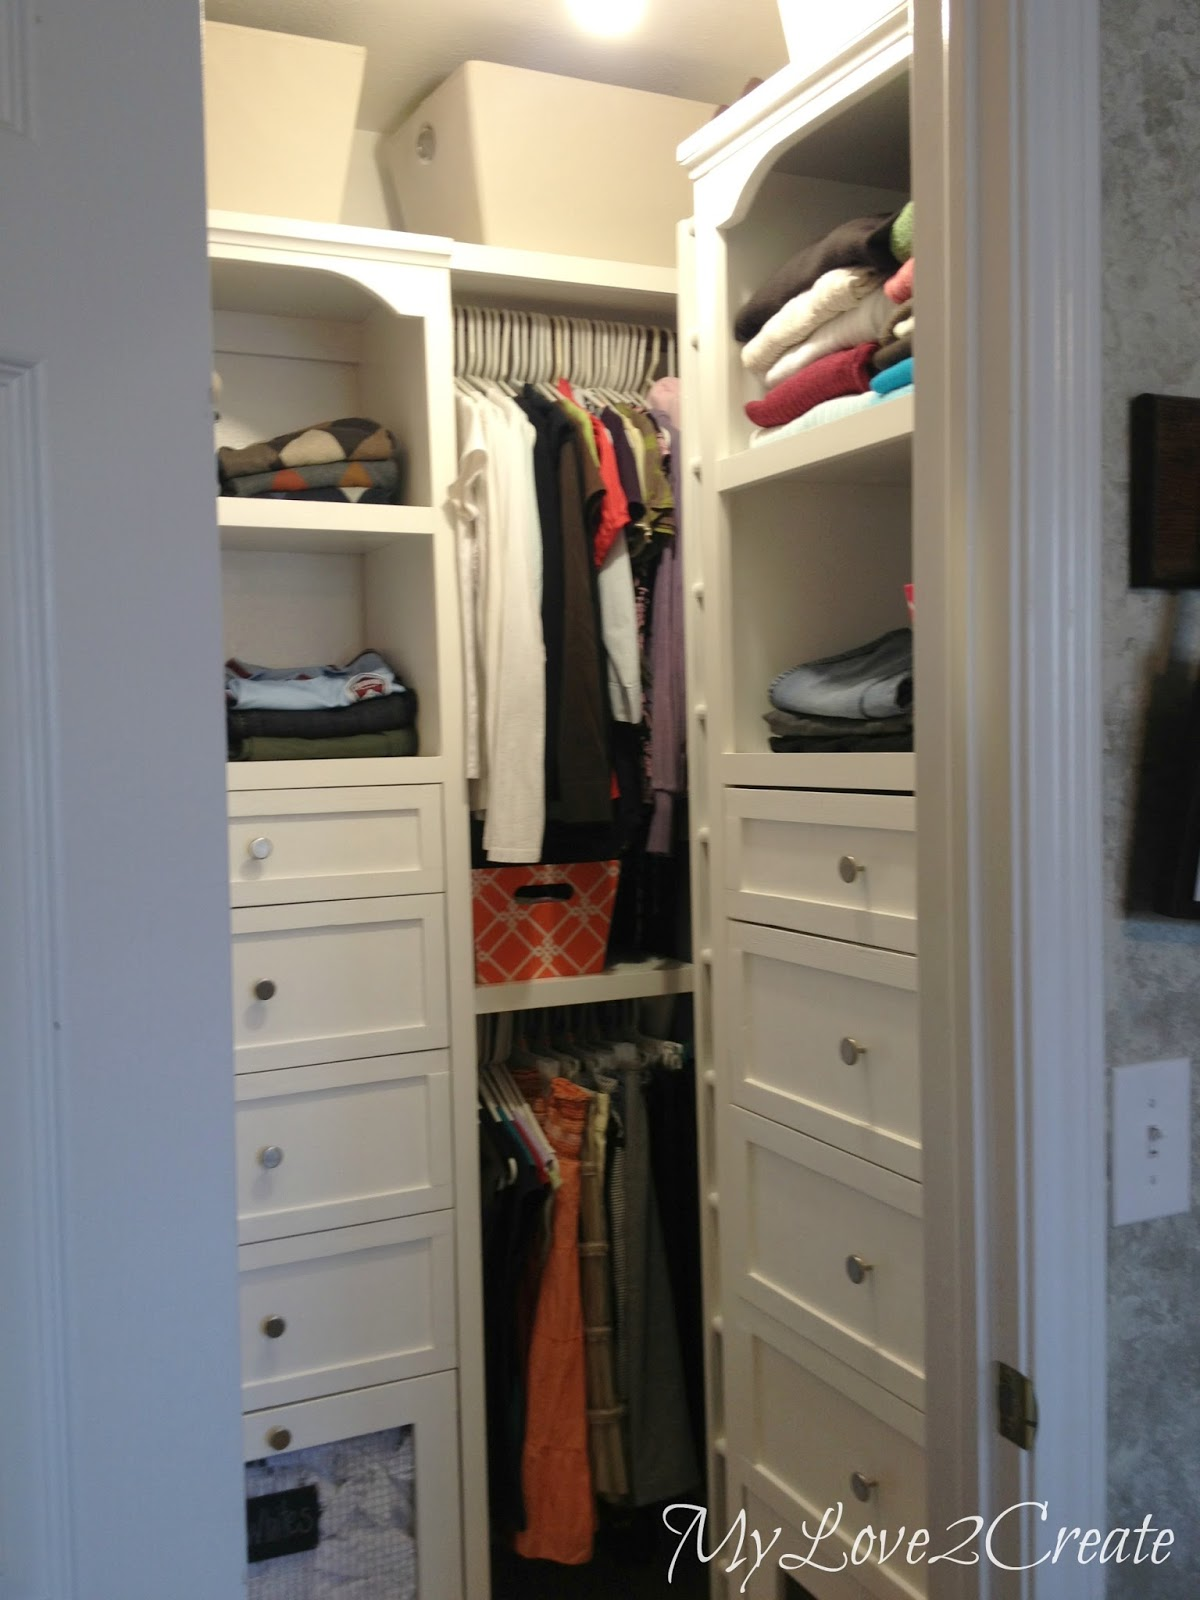 High Quality Master Closet Makeover With Drawers And Tower Shelves, My Love 2 Create On  Remodelaholic